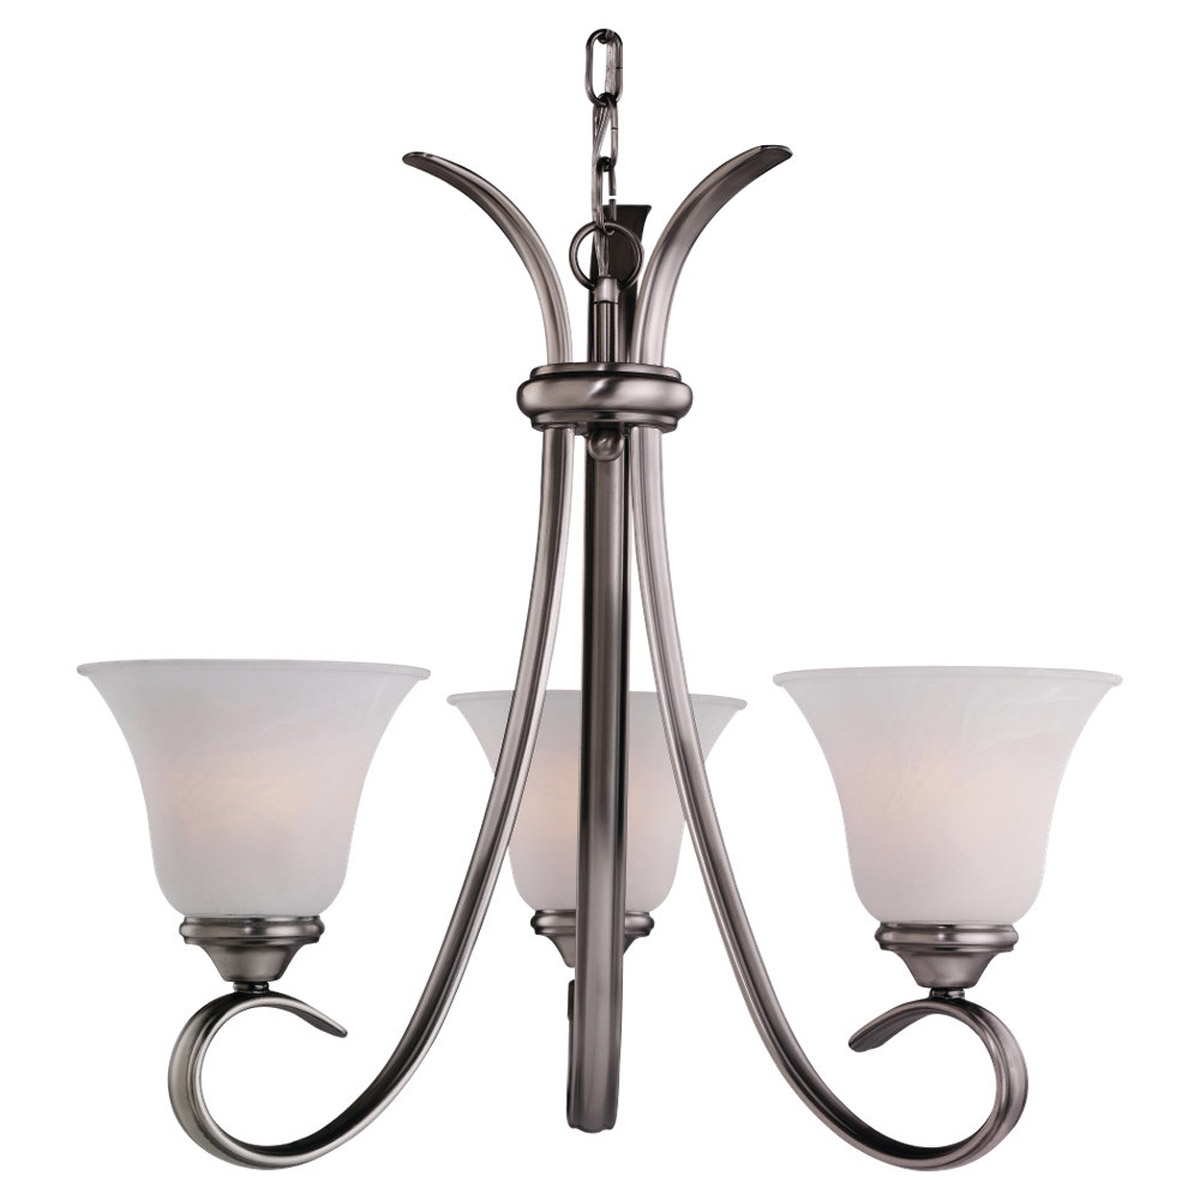 Sea Gull Lighting Rialto 3 Light Chandelier in Antique Brushed Nickel 31360-965